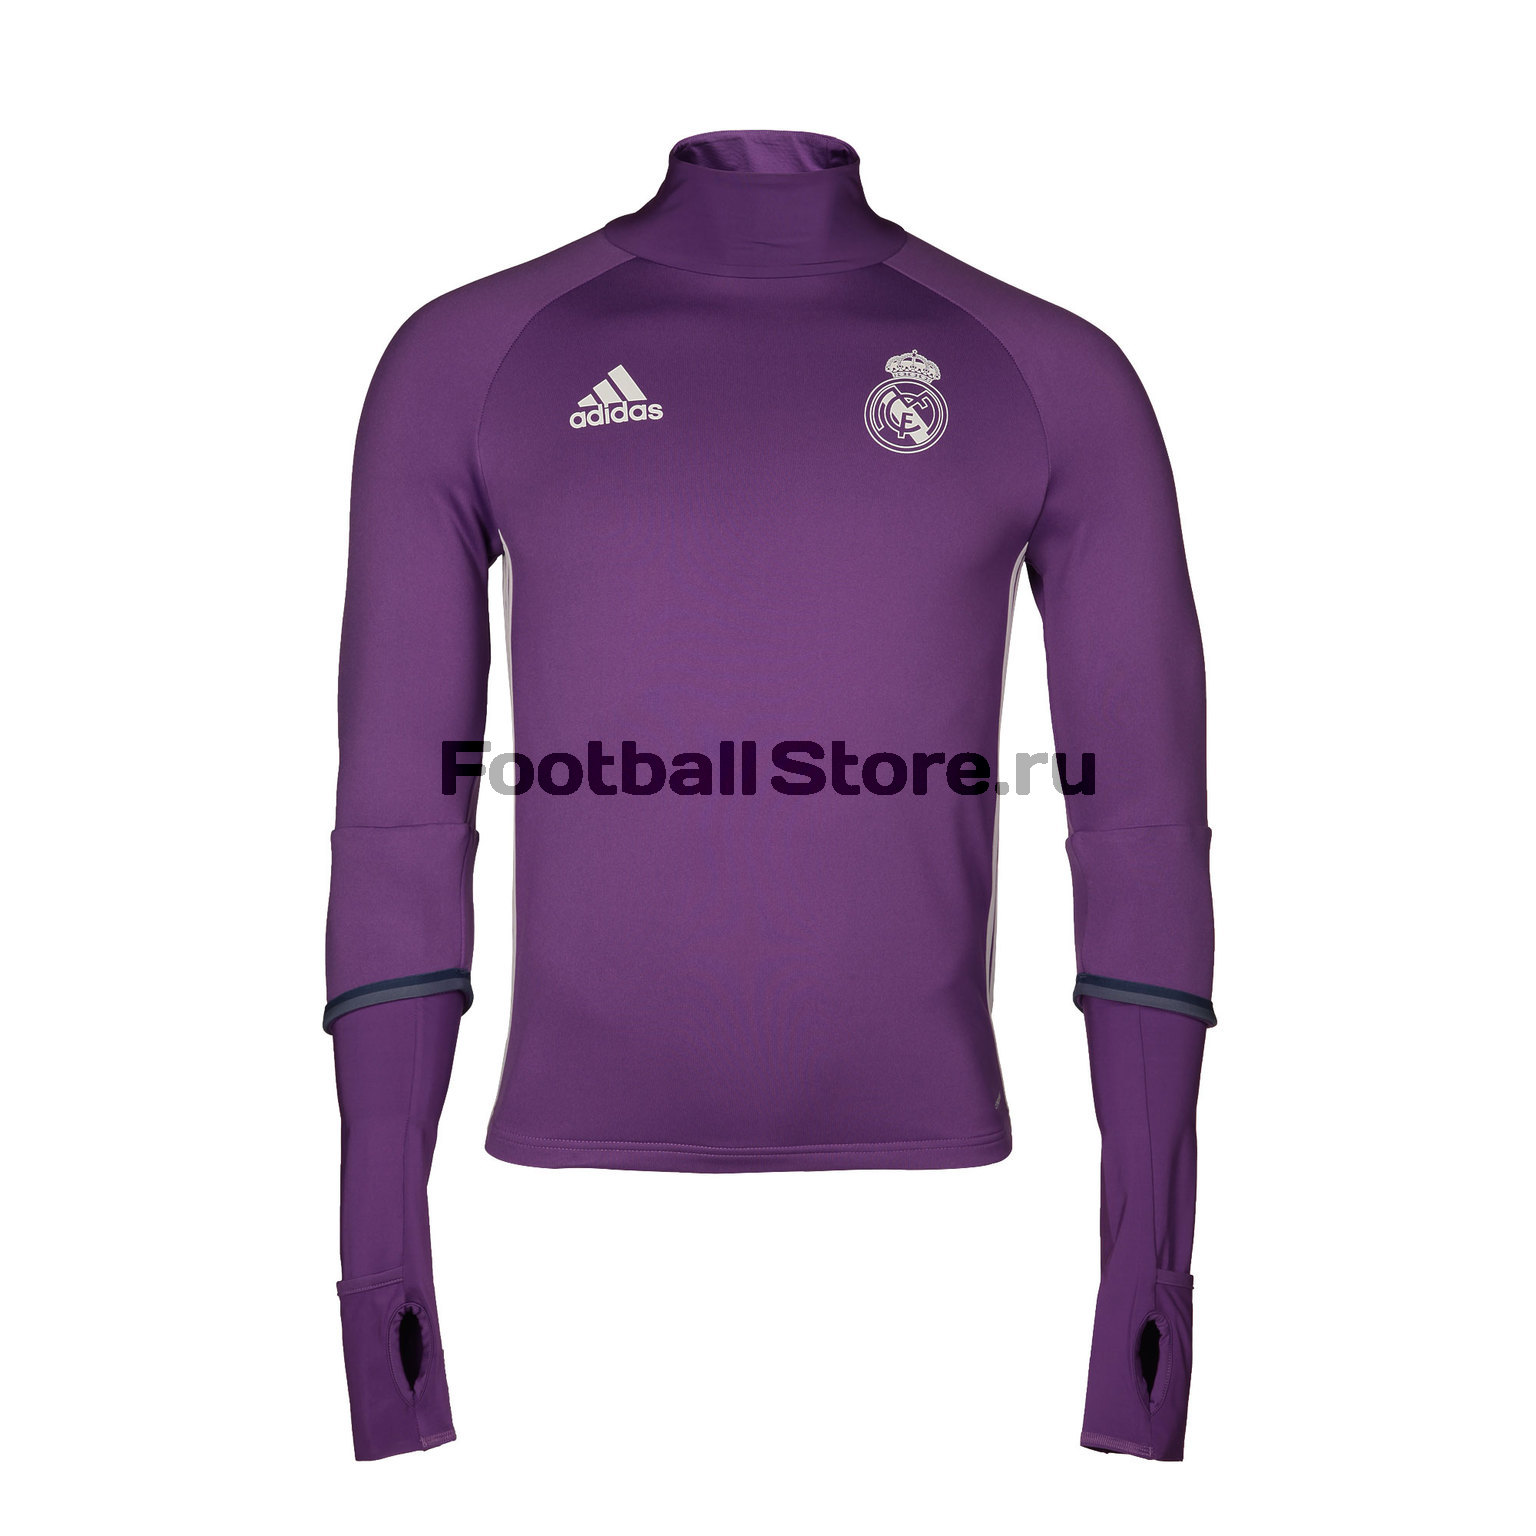 Real Madrid Adidas Свитер тренировочный Adidas Real Madrid TRG TOP AO3131 real madrid adidas свитер adidas real madrid euhybrid top bq7851